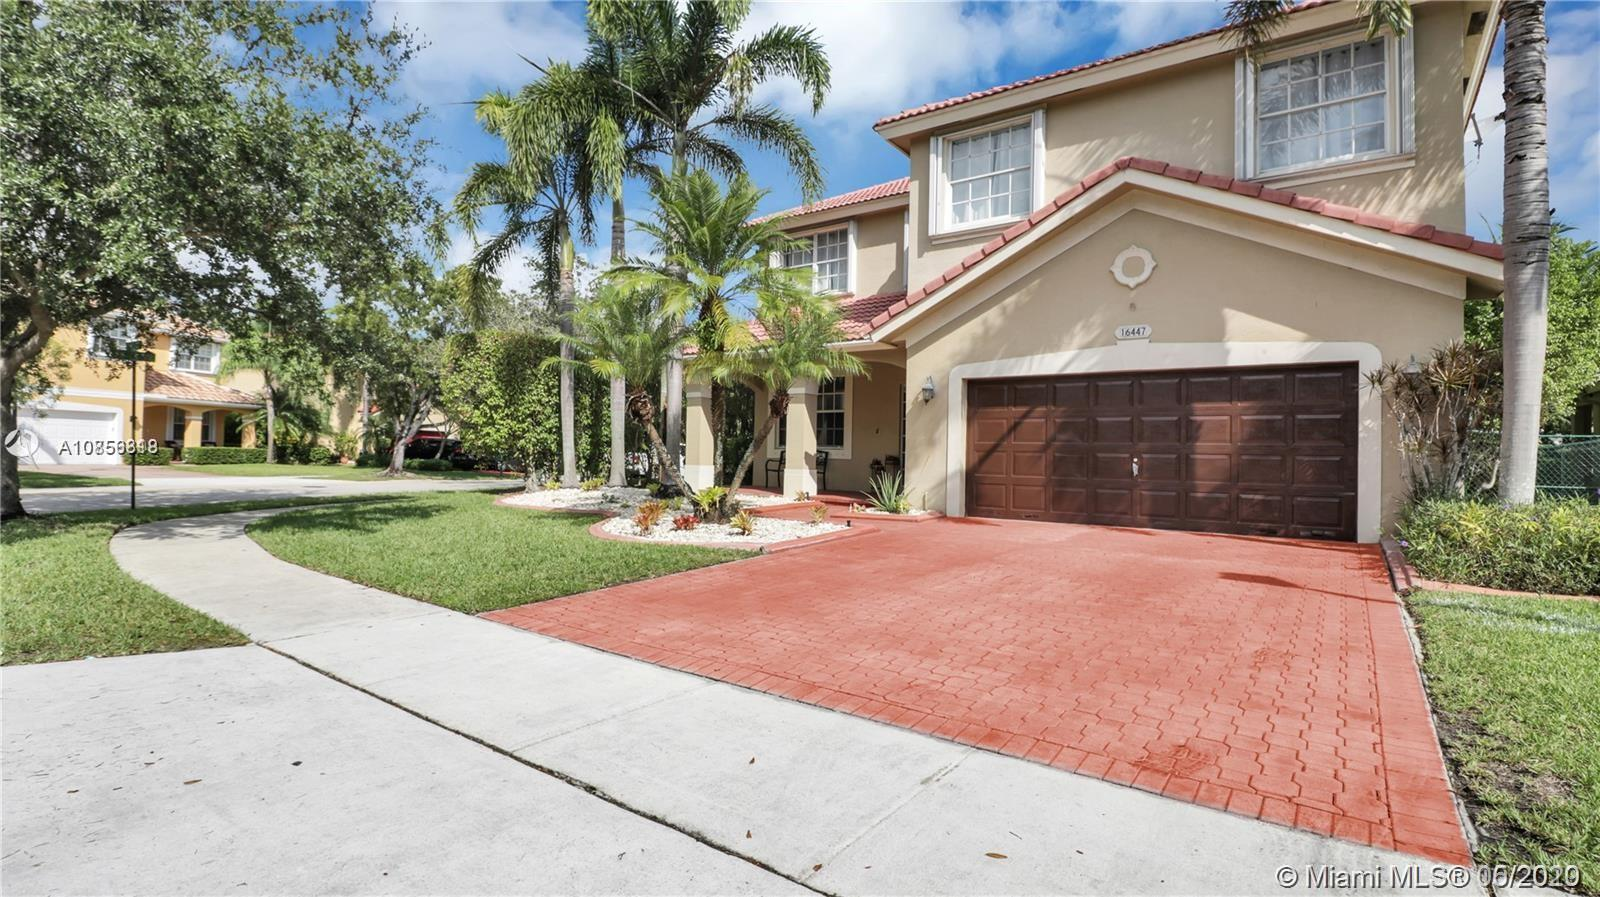 BOGO Amazing 20K+ towards closing cost. 2 different Appraisals Came in @ 536,000 on this Stunning Updated 5/3 home with room for a POOL on a Corner LOT. Some of the home features are Diamond shape tiles downstairs, wood floors on the stairs & hallways, and fresh plush carpet in the rooms. New Stainless steel appliances, front load washer/dryer upstairs, spectacular natural lighting from all areas of the home, 2 car garage and room to park multiple cars on the concrete stamped driveway. Enjoy eating on the master bedroom balcony or bathing in the outside hot tub the home comes with. The home is gated and has a great backyard to entertain all sizes of events. 2 AC units, accordion shutters and hurricane panels. Ready to move in.  Special terms applied. Original safe and sound roof.